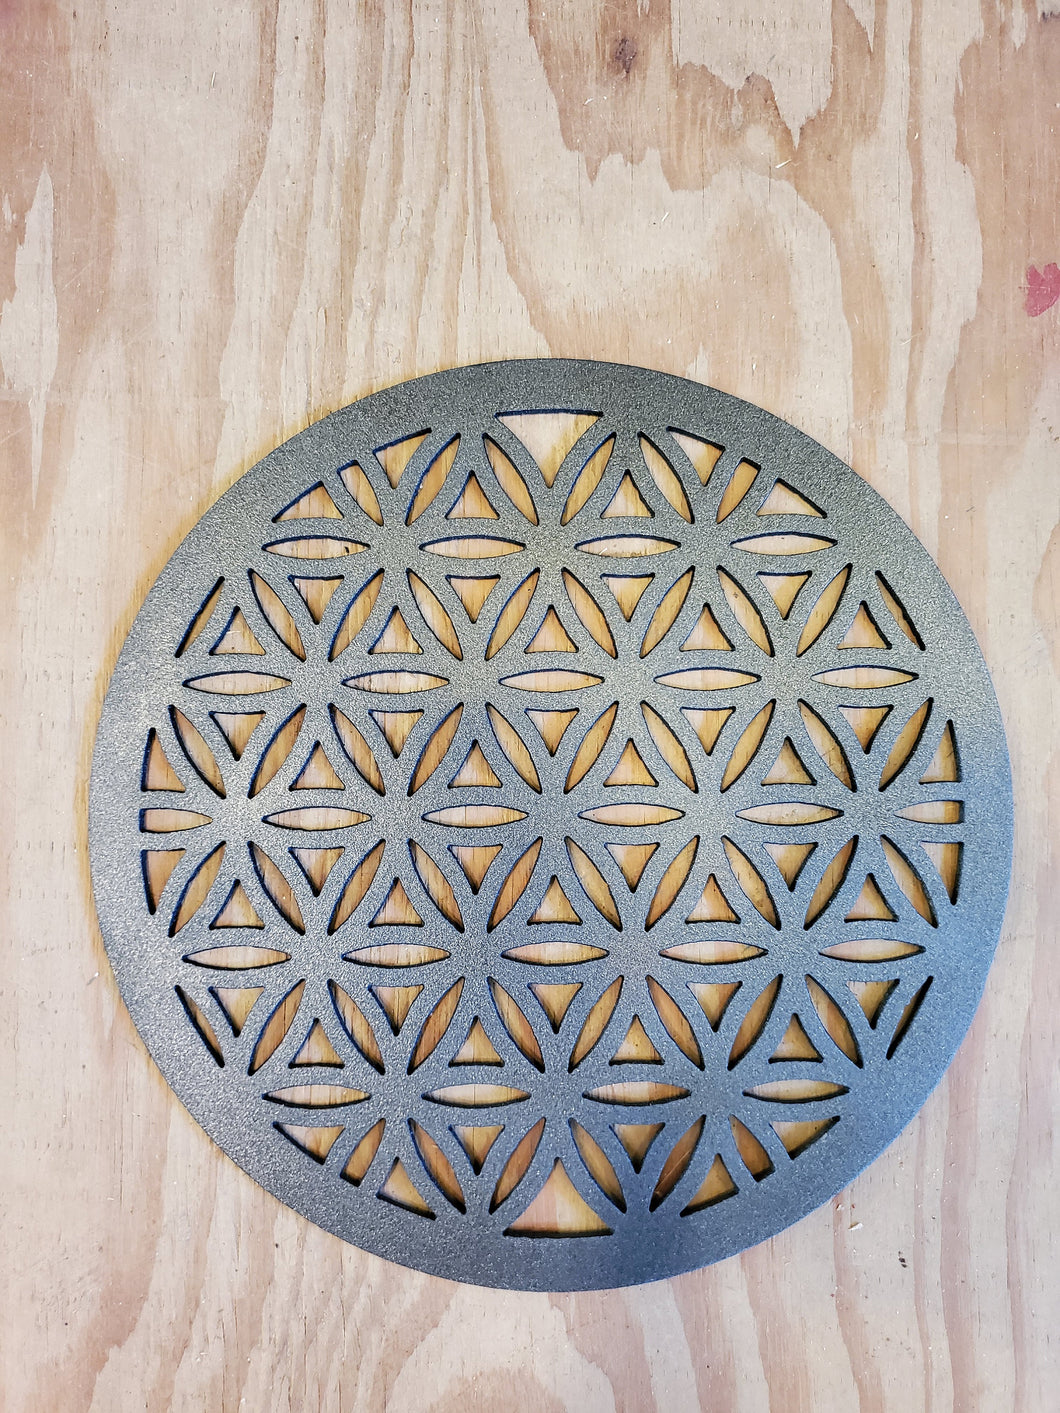 Flower of Life, steel 10 or 14ga thickness available